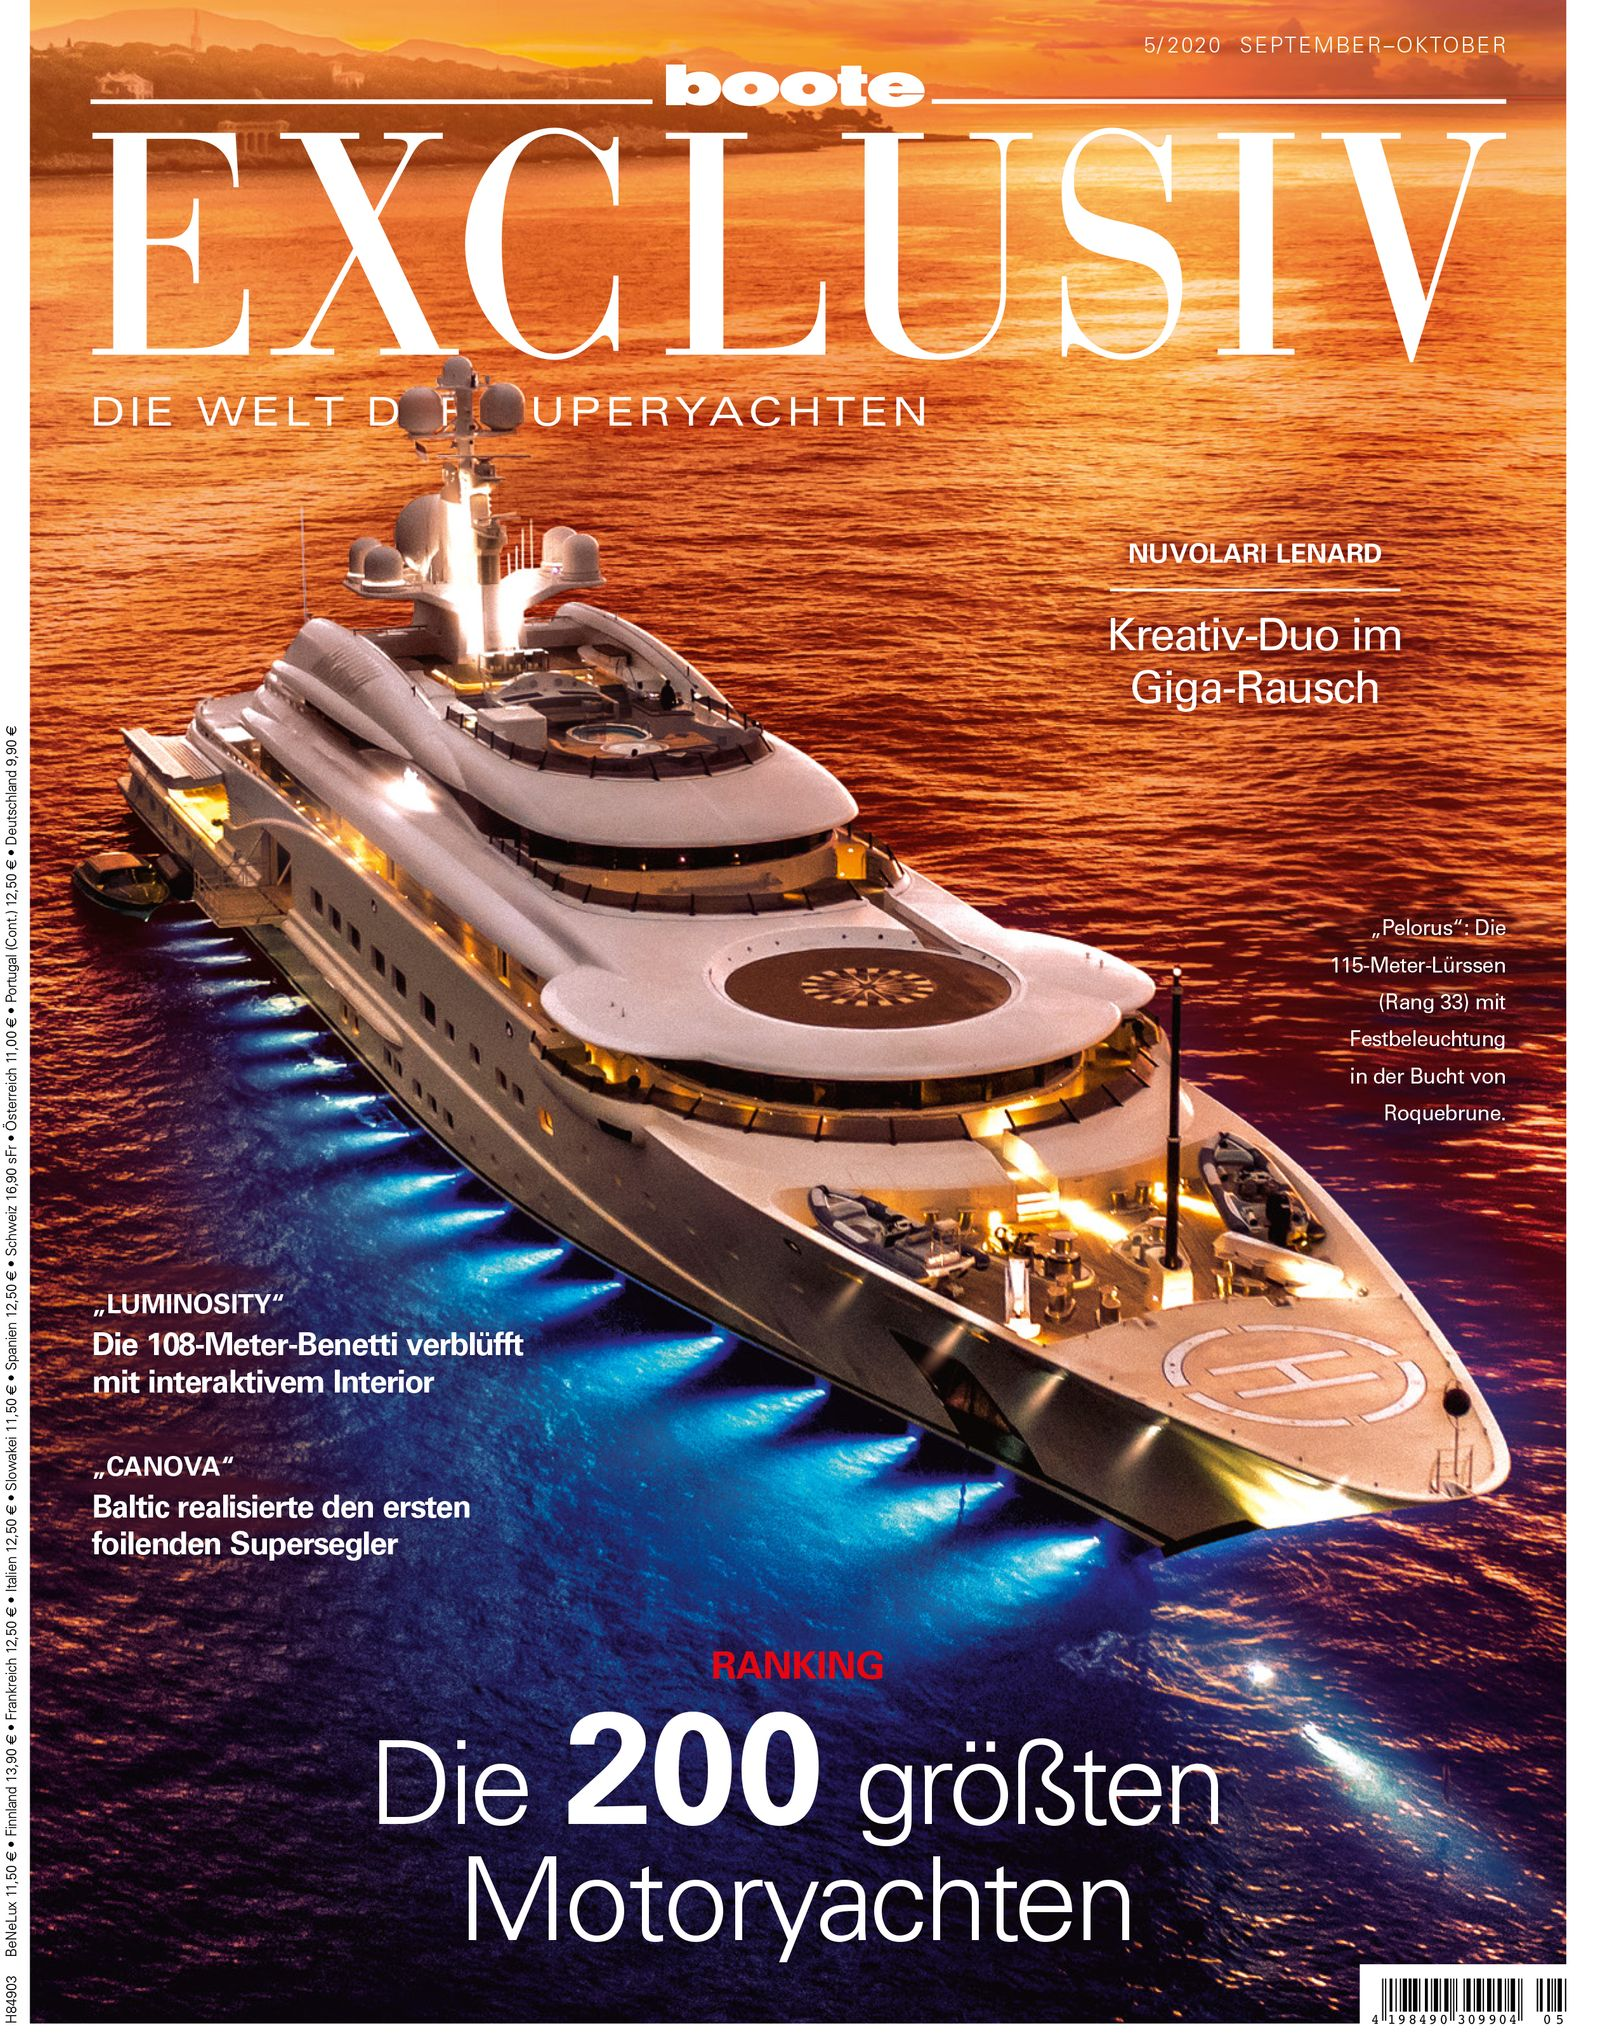 COVER Boote exclusiv 5/2020